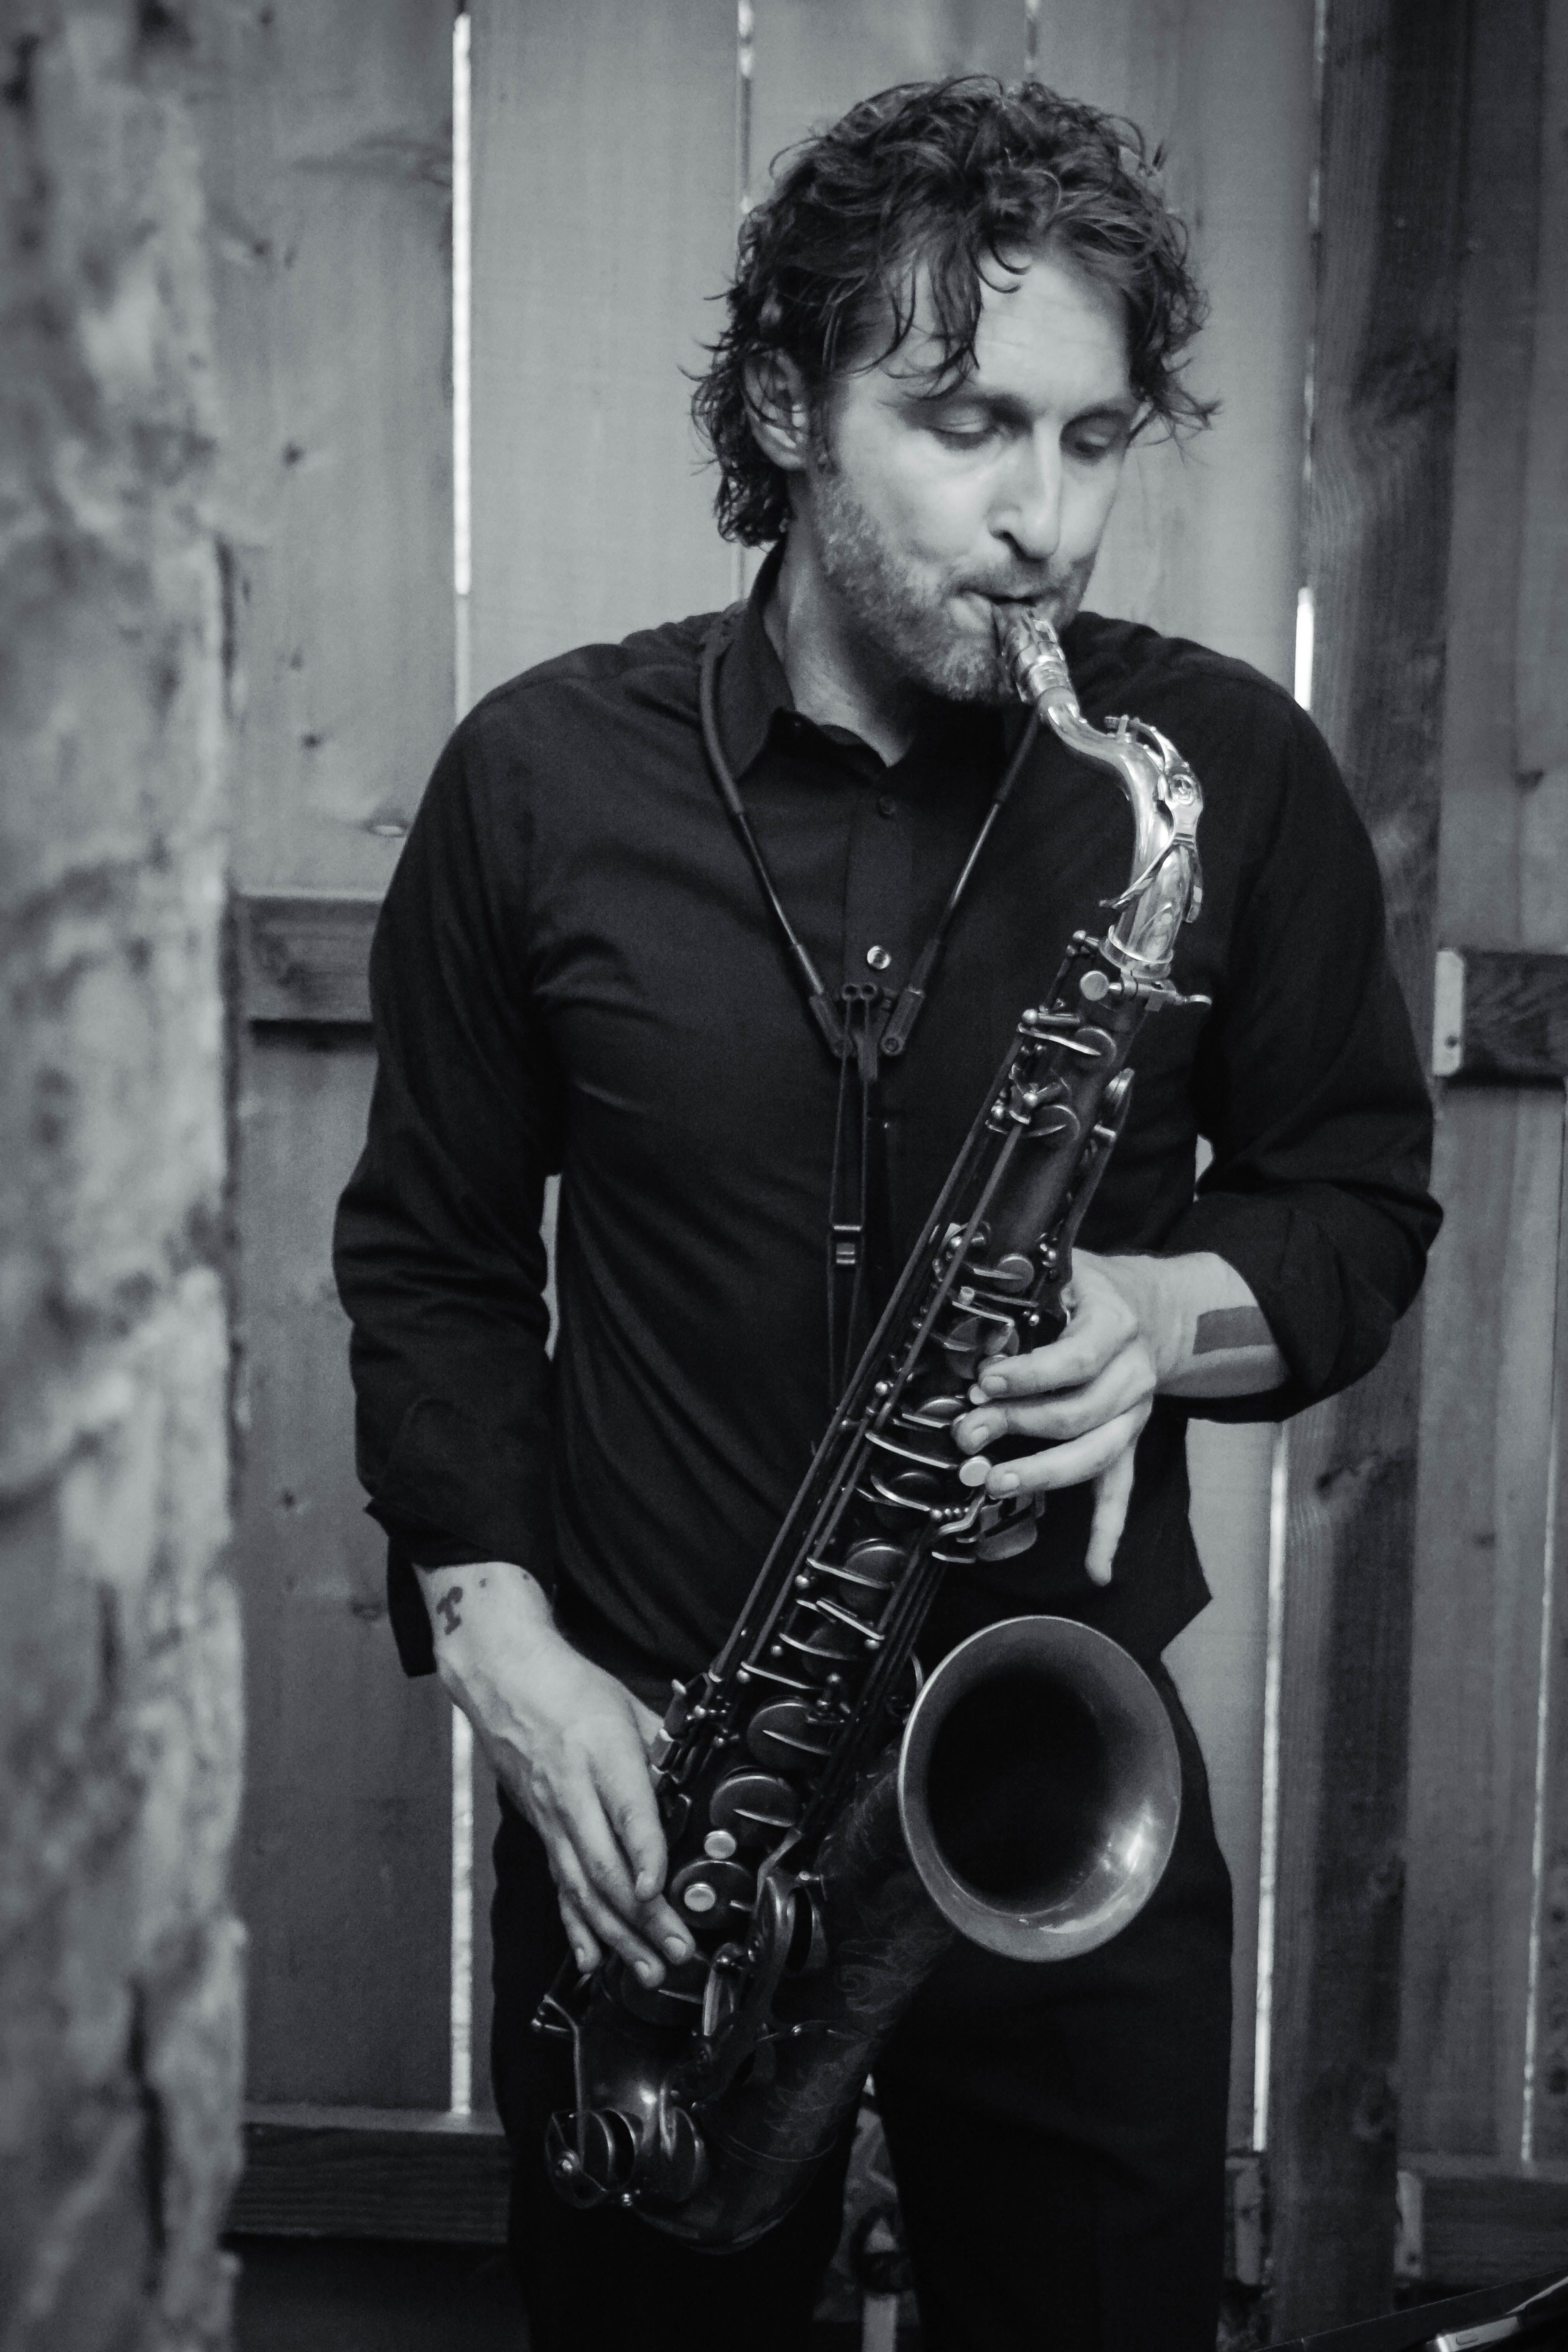 Tom Renner playing saxophone.